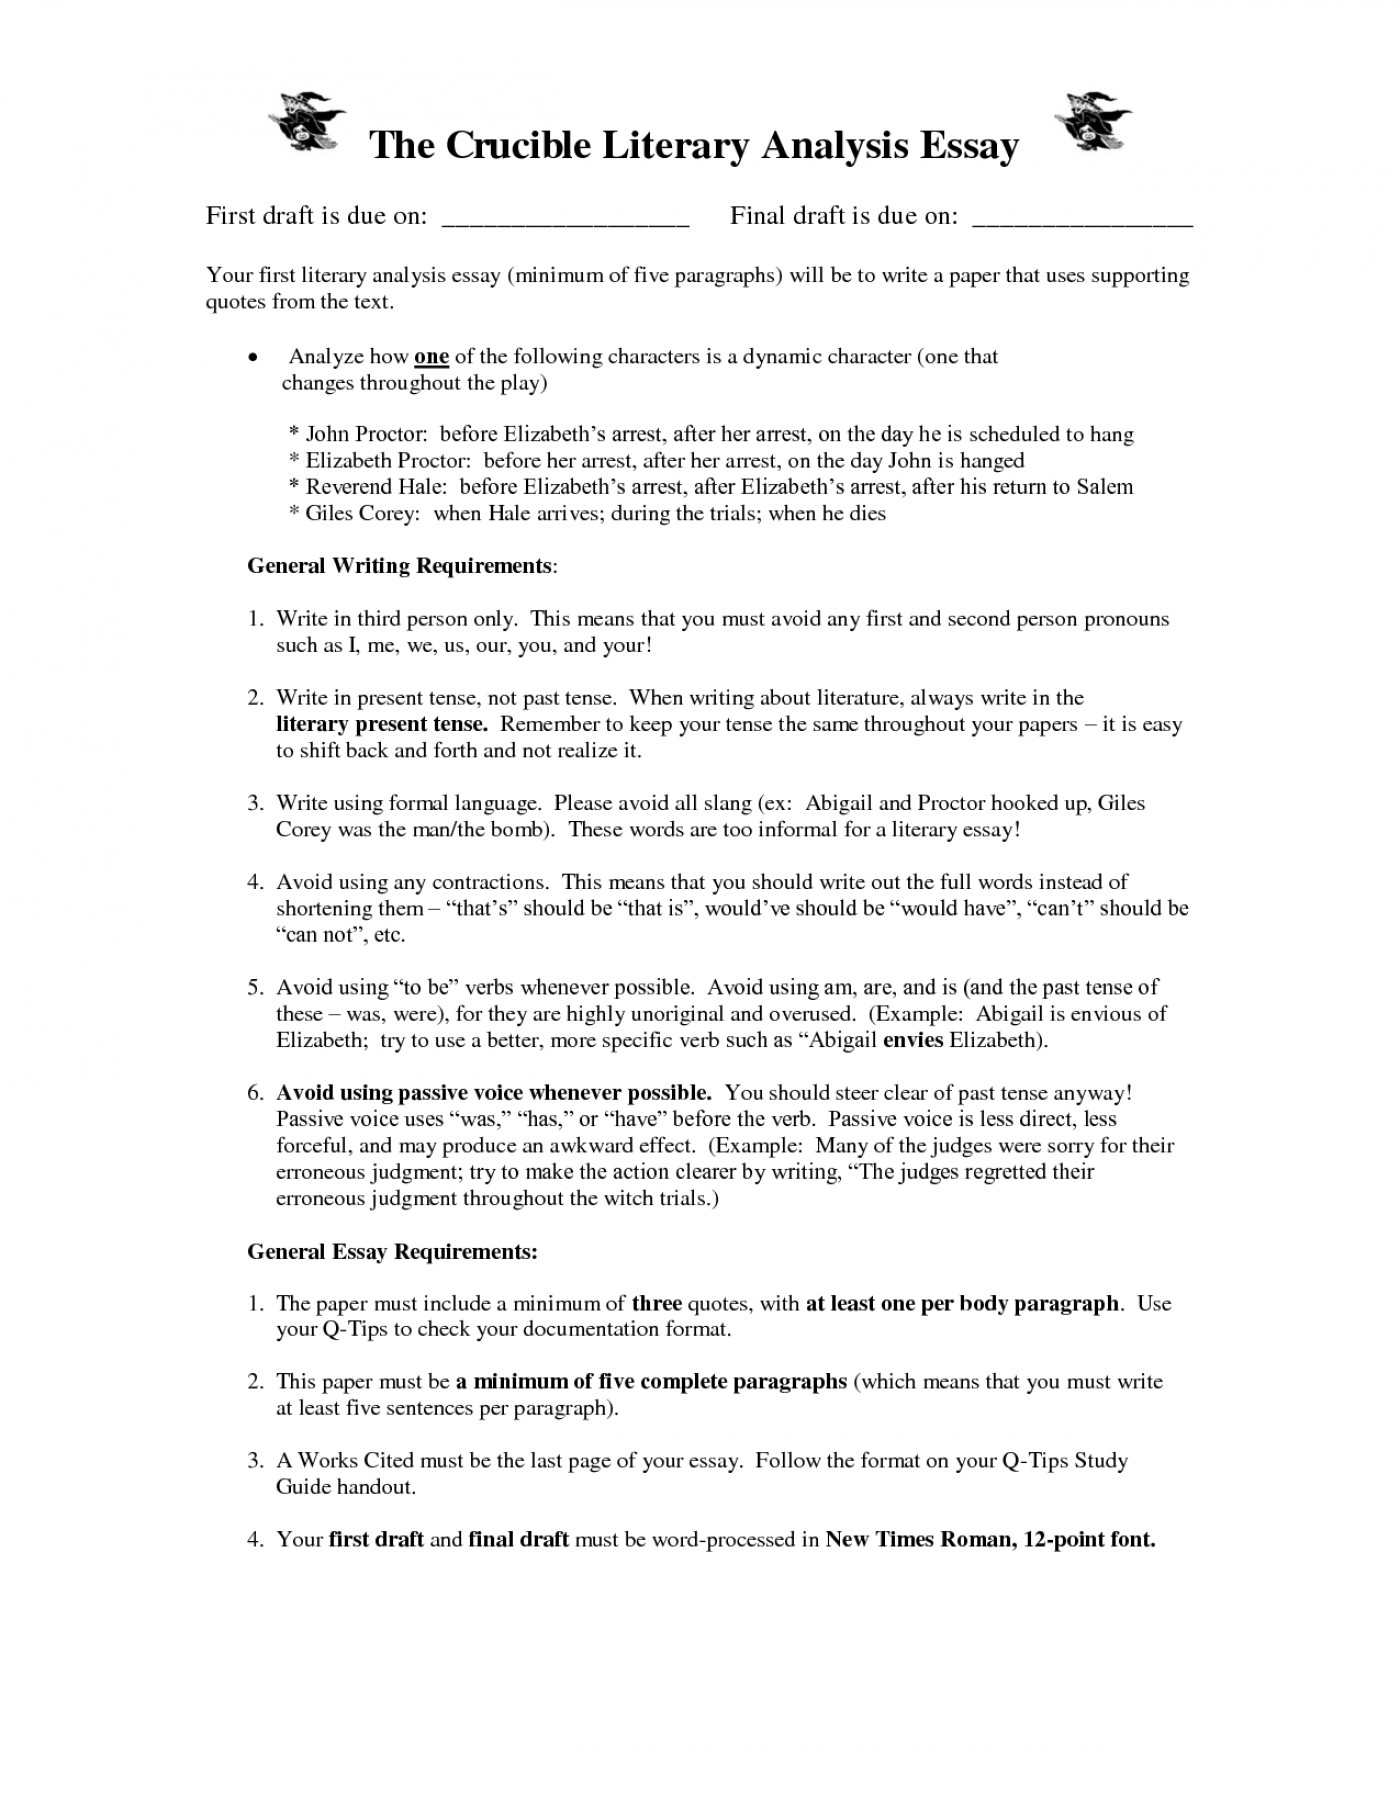 021 Essay Example Literary Essays Of The Crucible How Tote Step By Conclusion On Romeo And Juliet Introduction Do You Outline 4th Grade Analysis Pdf Formidable To Write A Good English Literature 4 1400